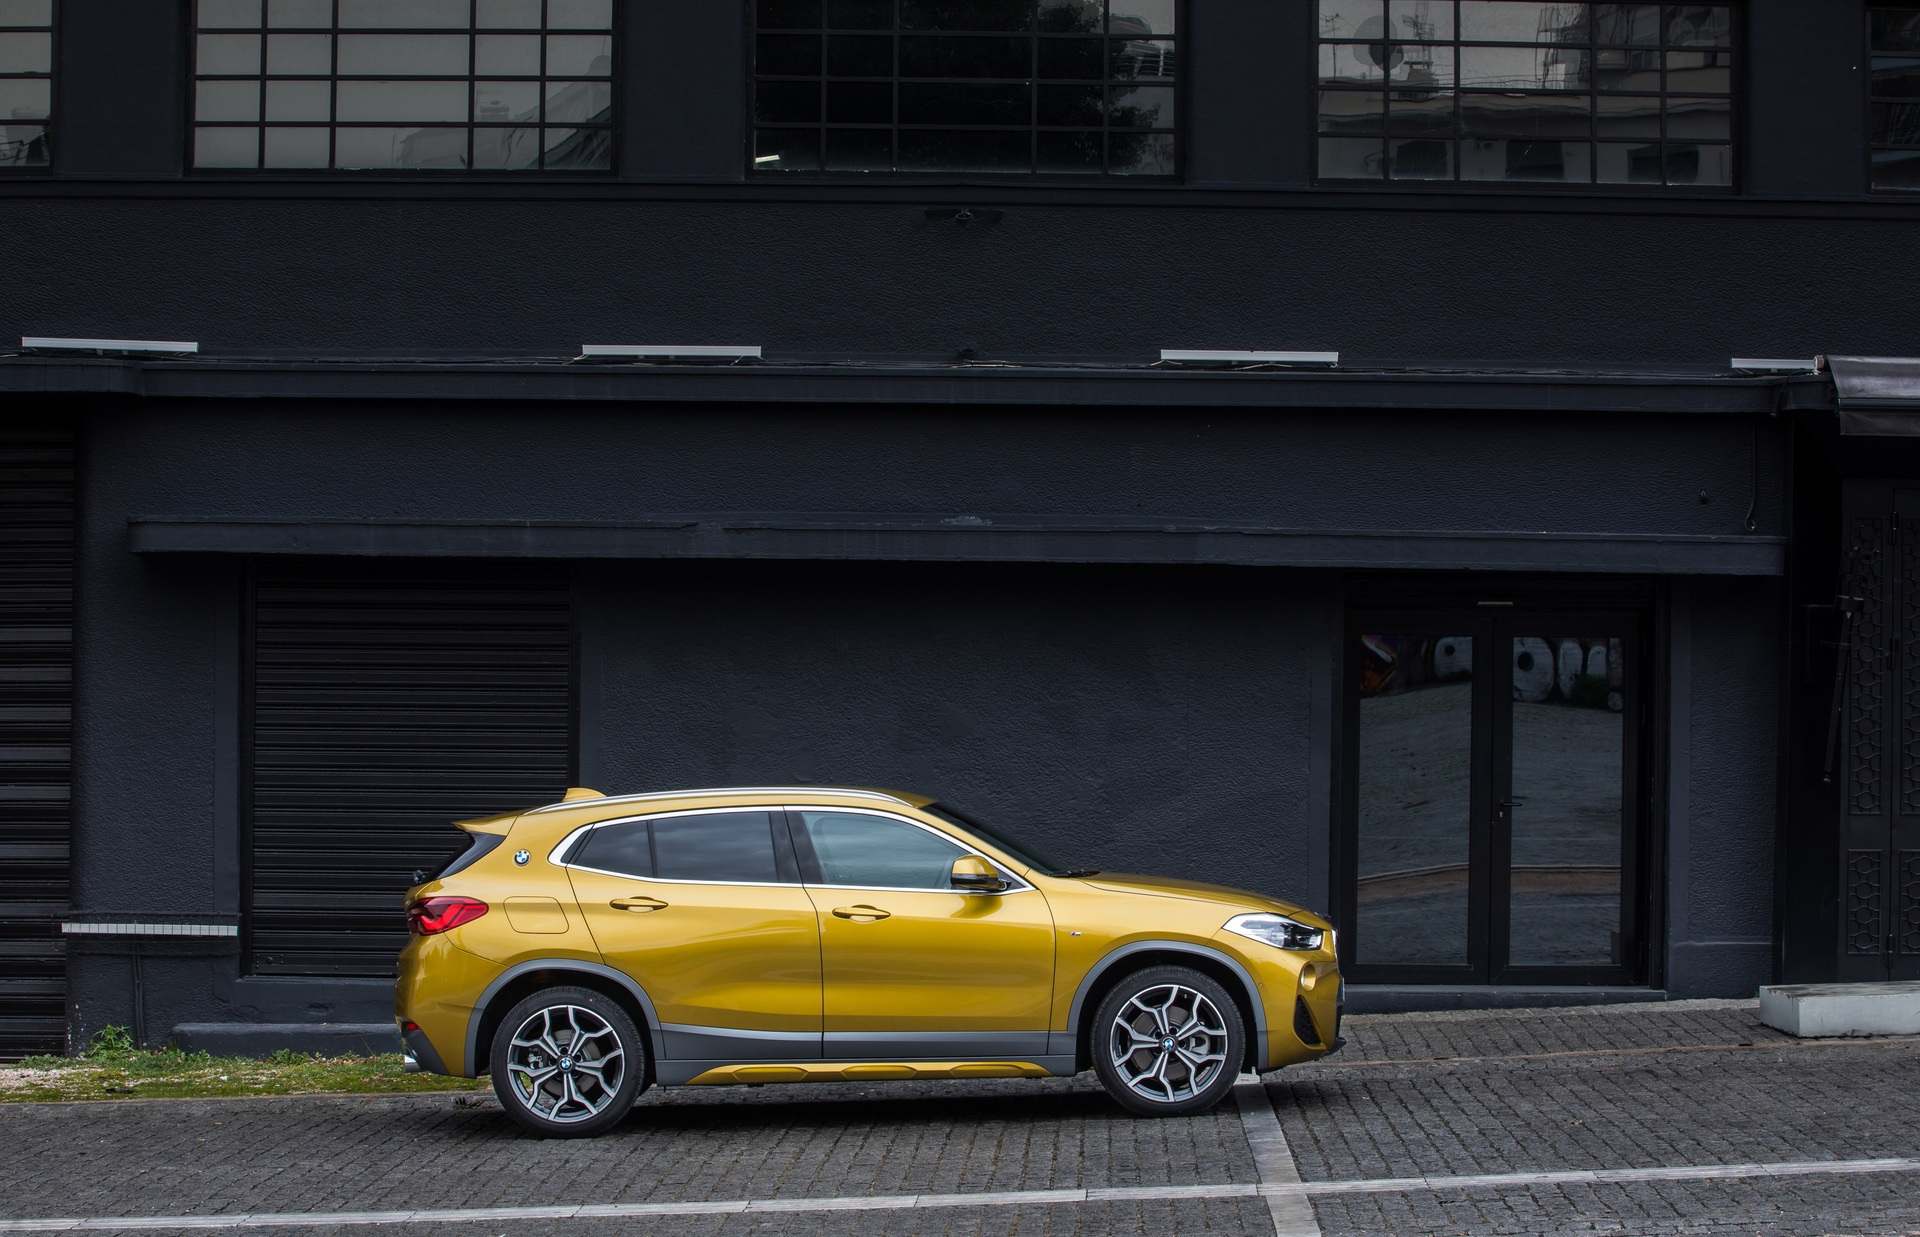 BMW_X2_Greek_presskit_0056